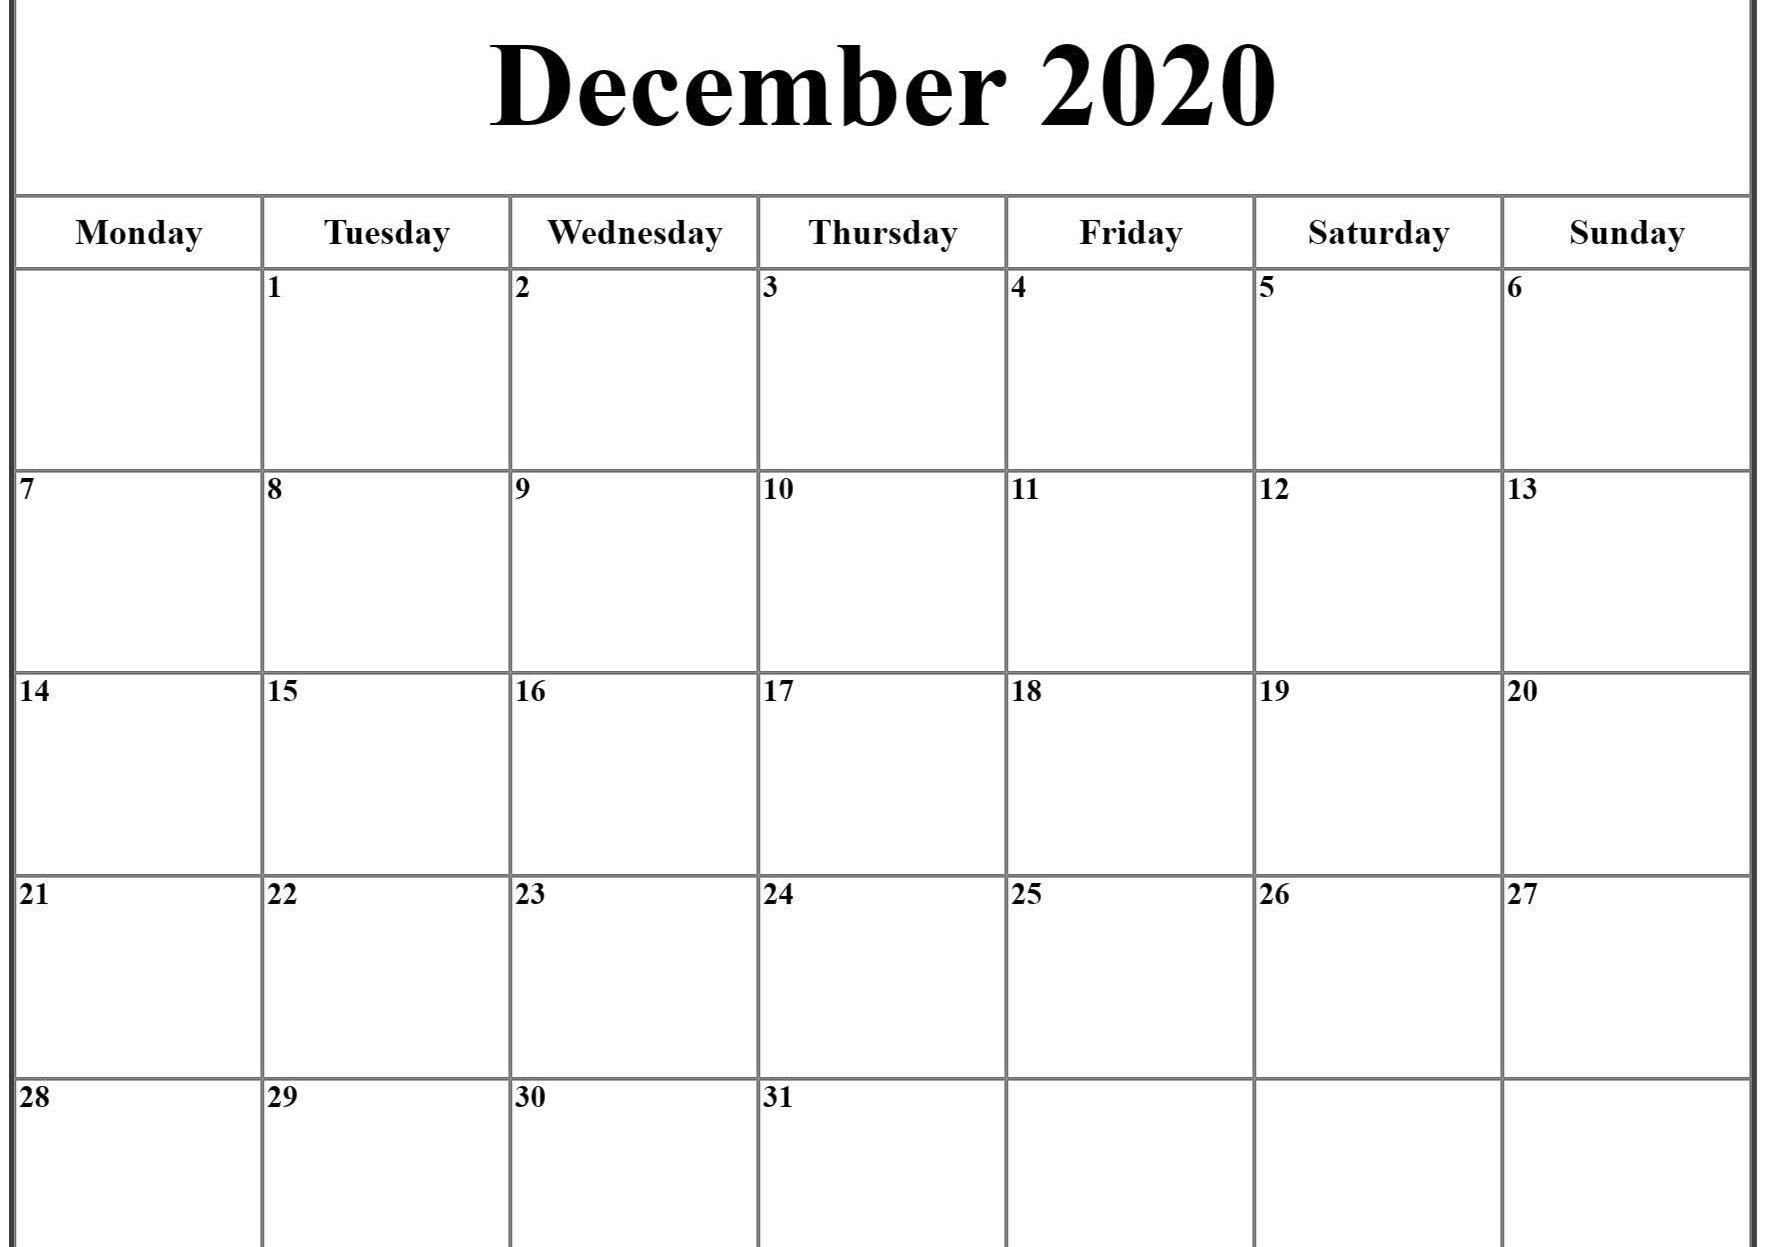 December 2020 Calendar Excel | December Calendar, Printable with regard to 123 Calendars December 2020